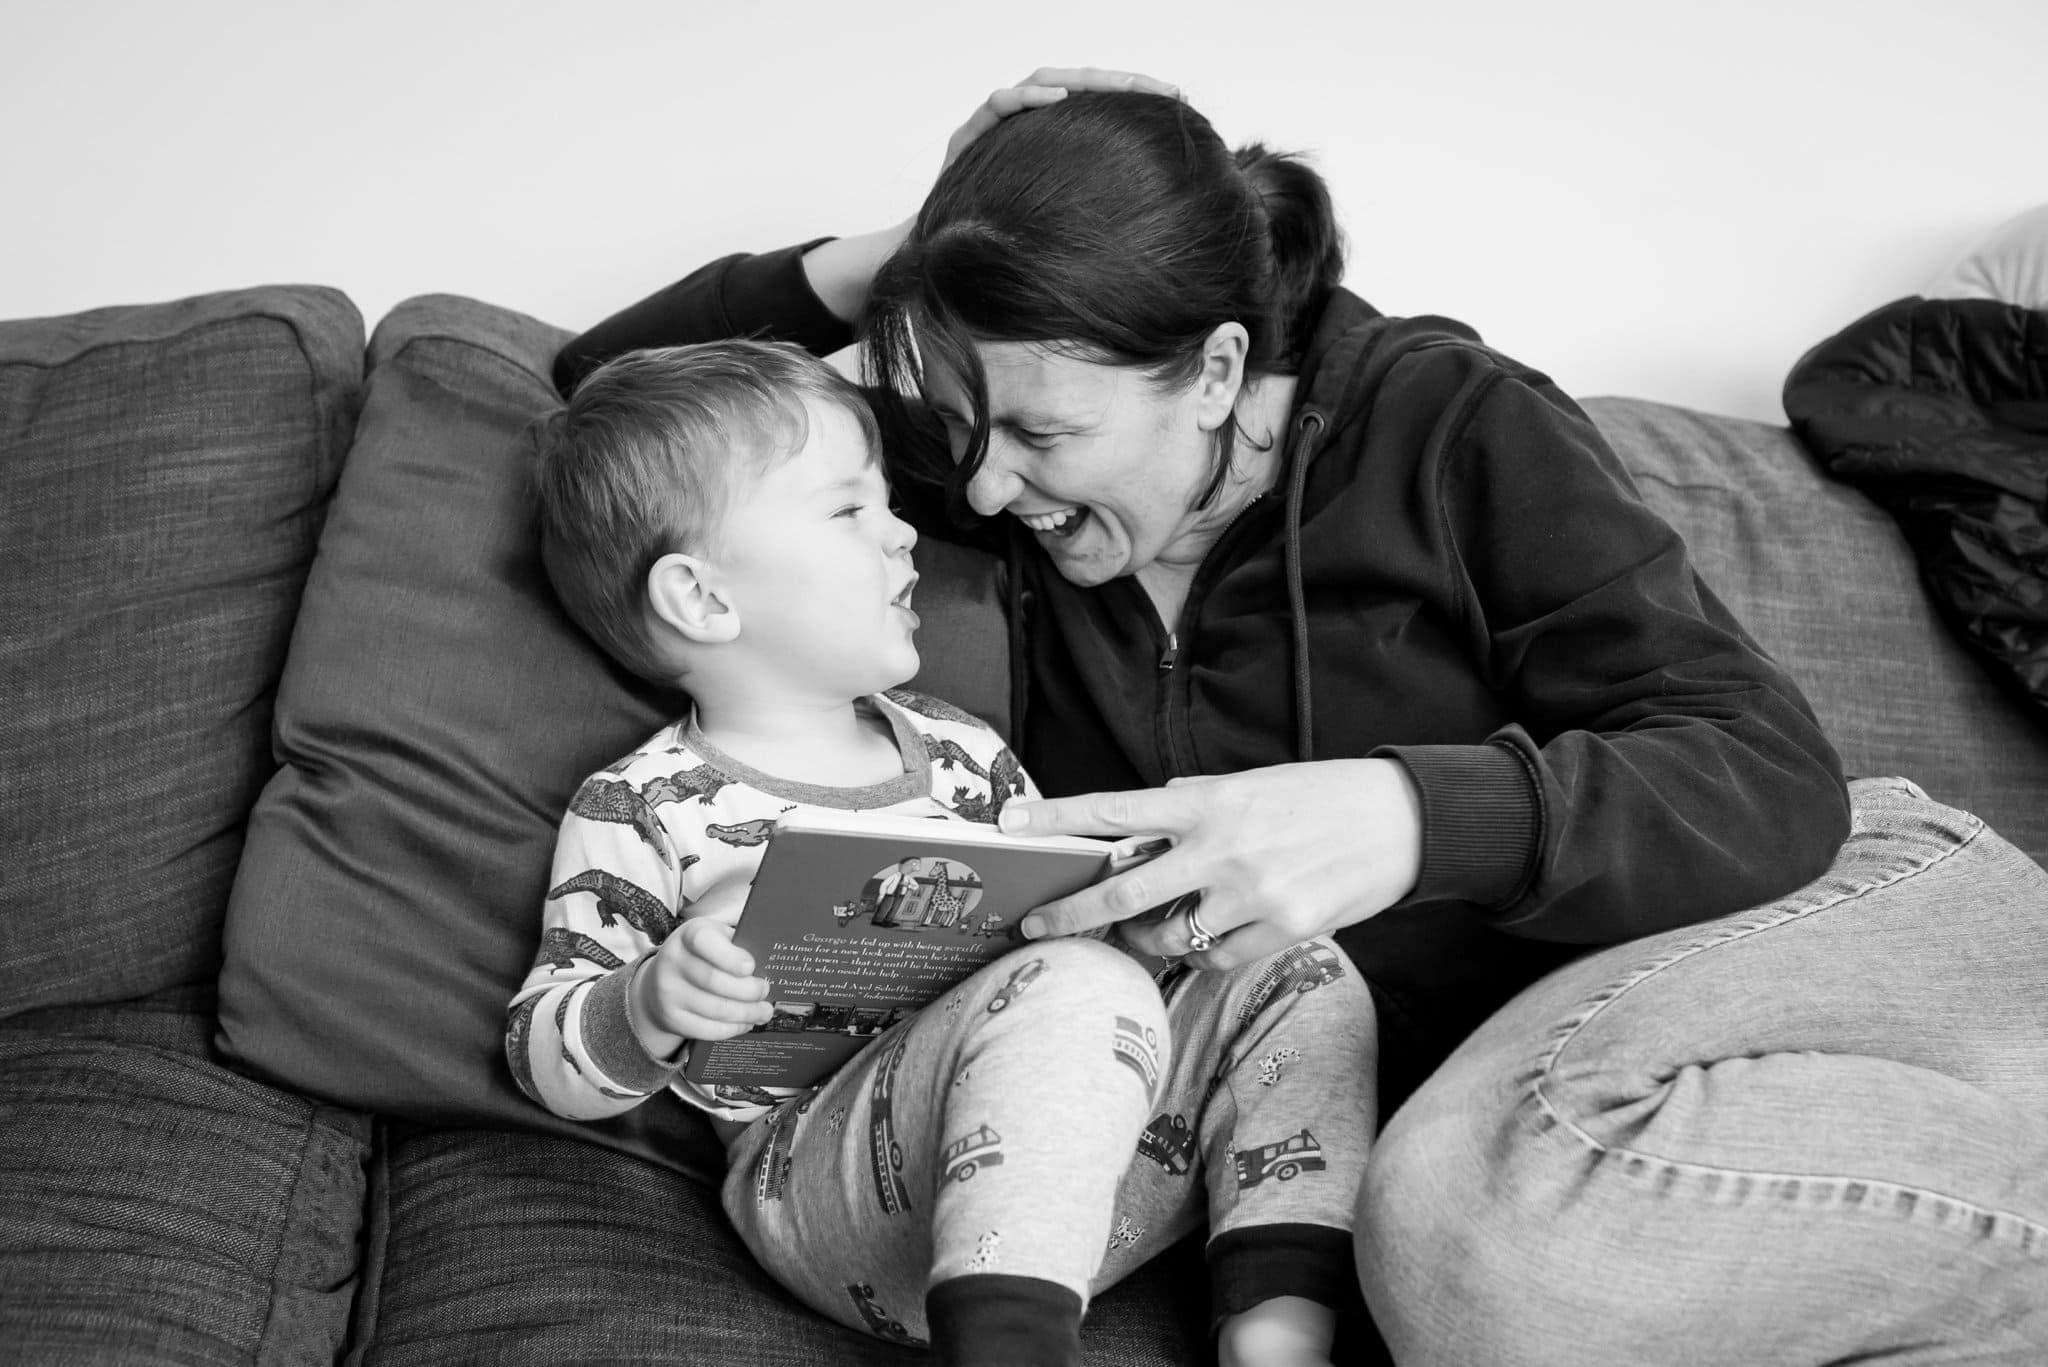 Tori Deslauriers photographer reading a book with her son on the sofa